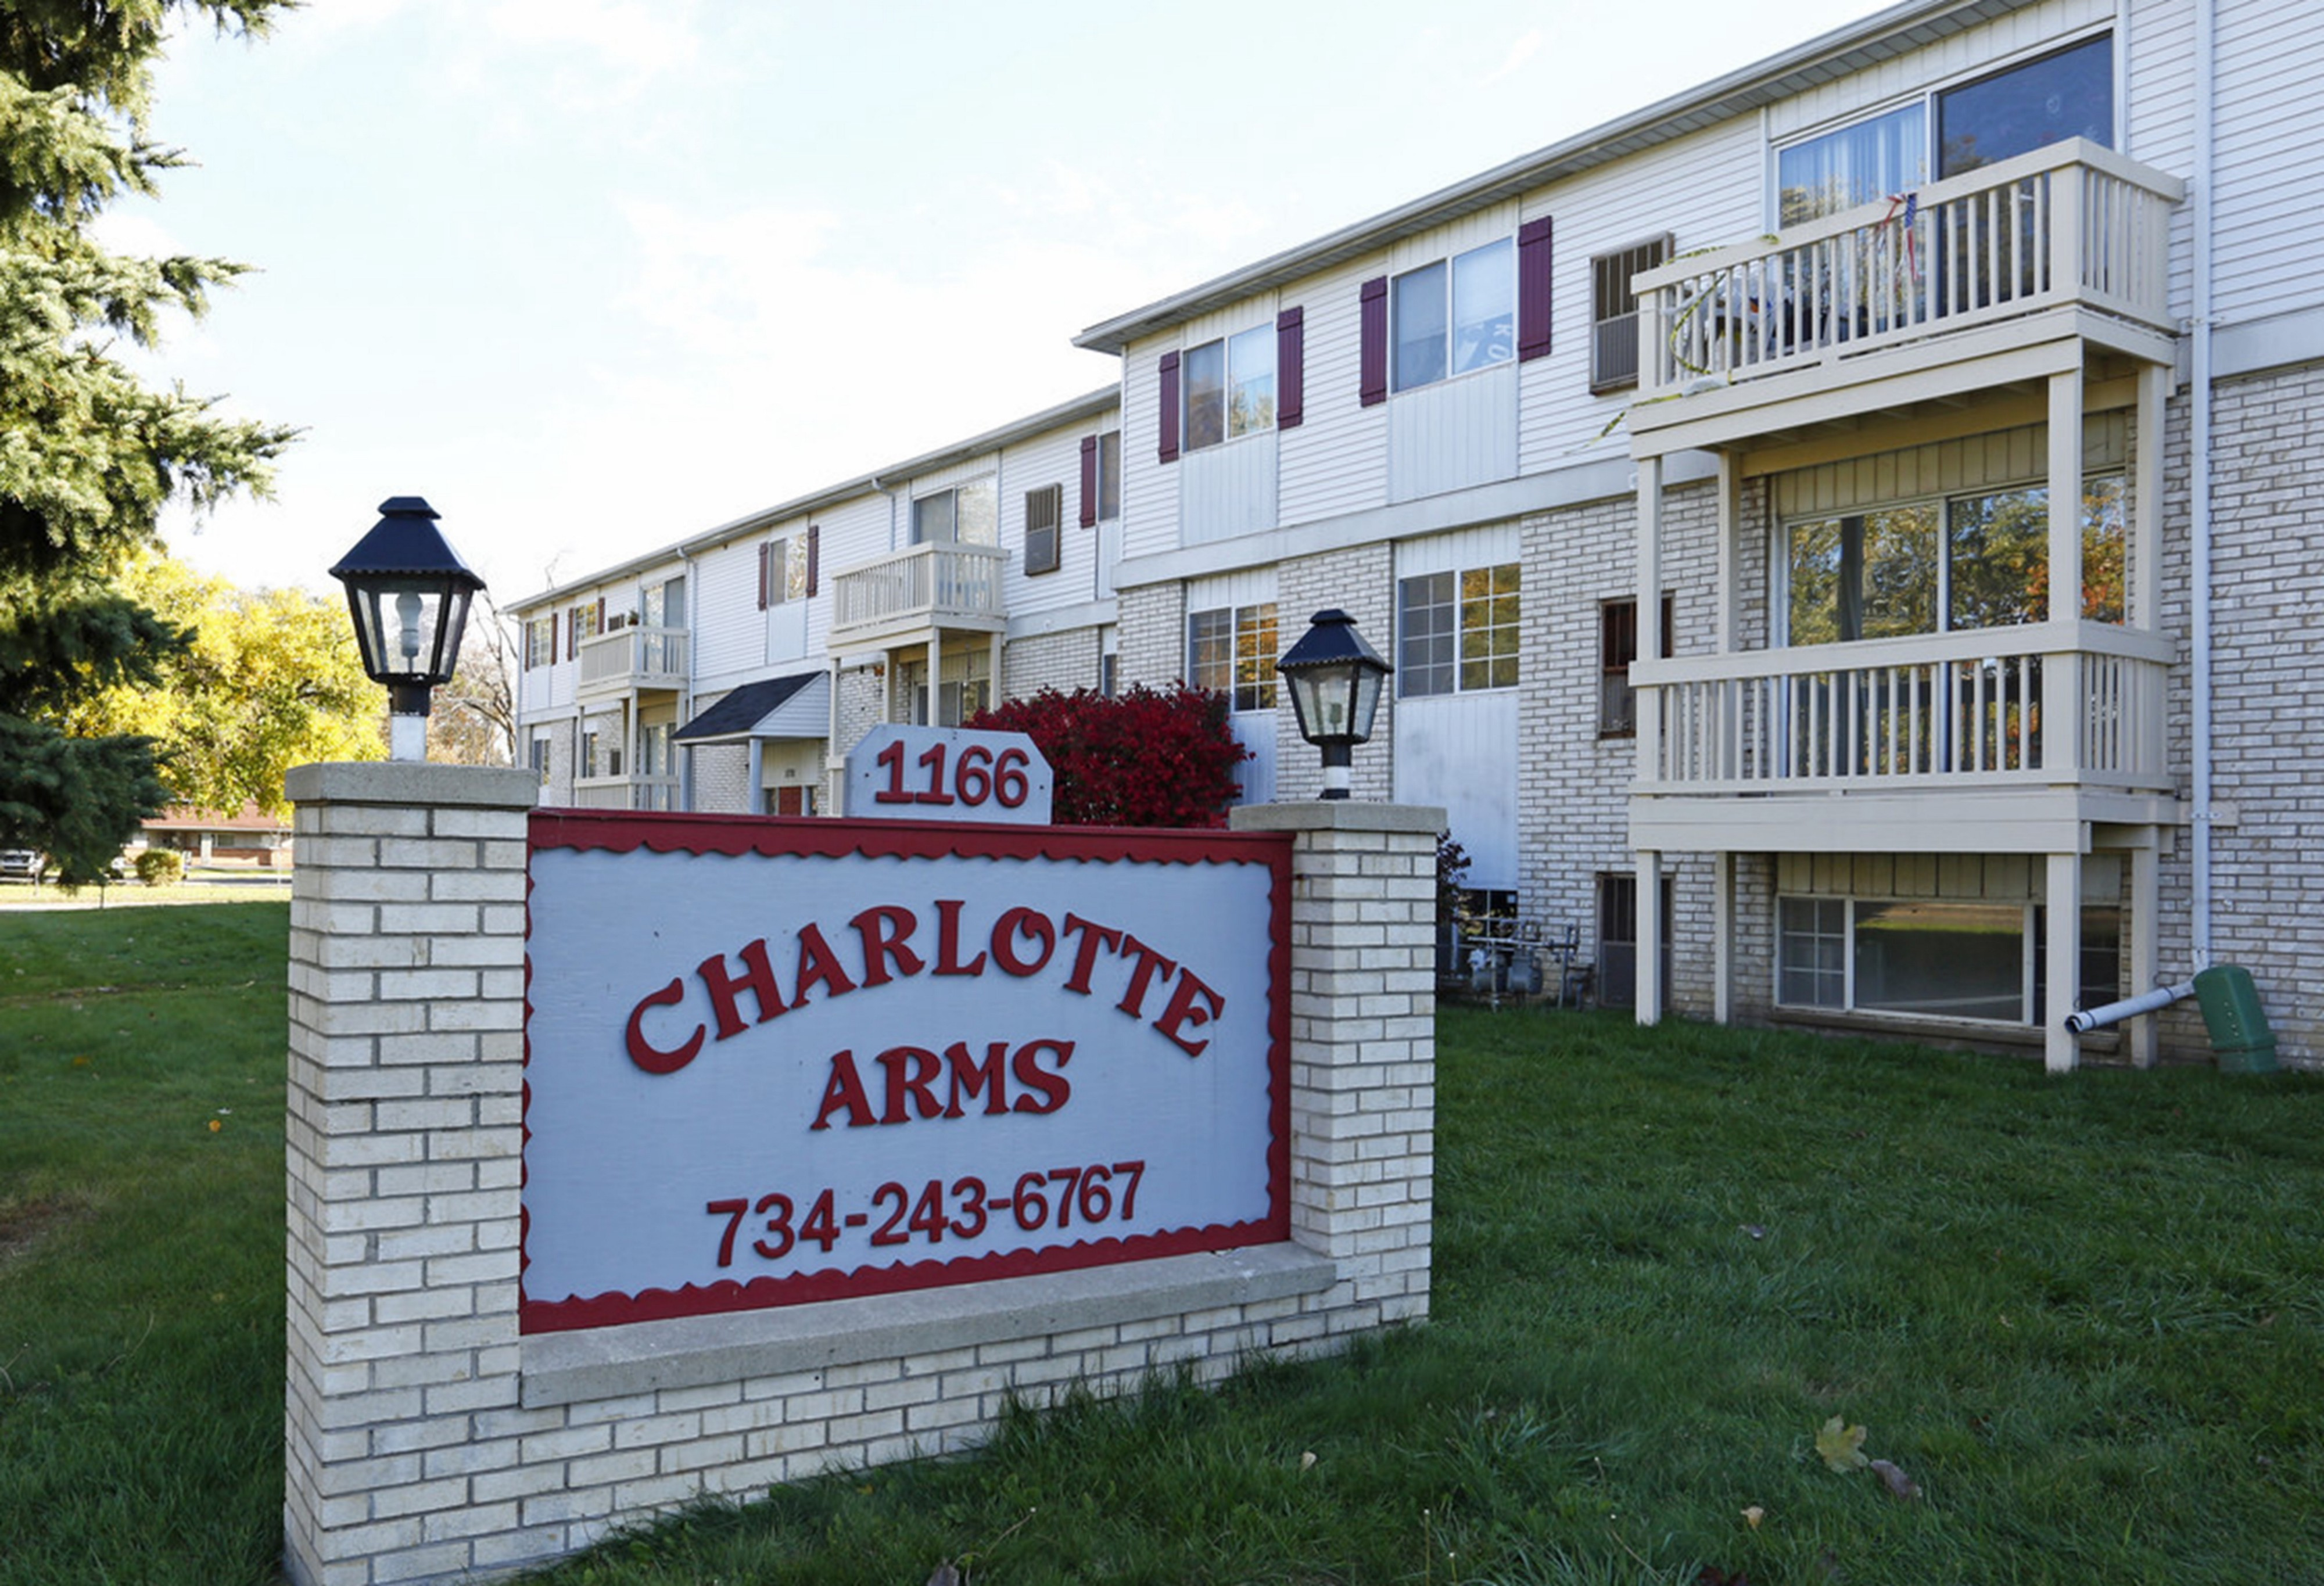 Charlotte Arms Apartments located near downtown Monroe, Michigan.